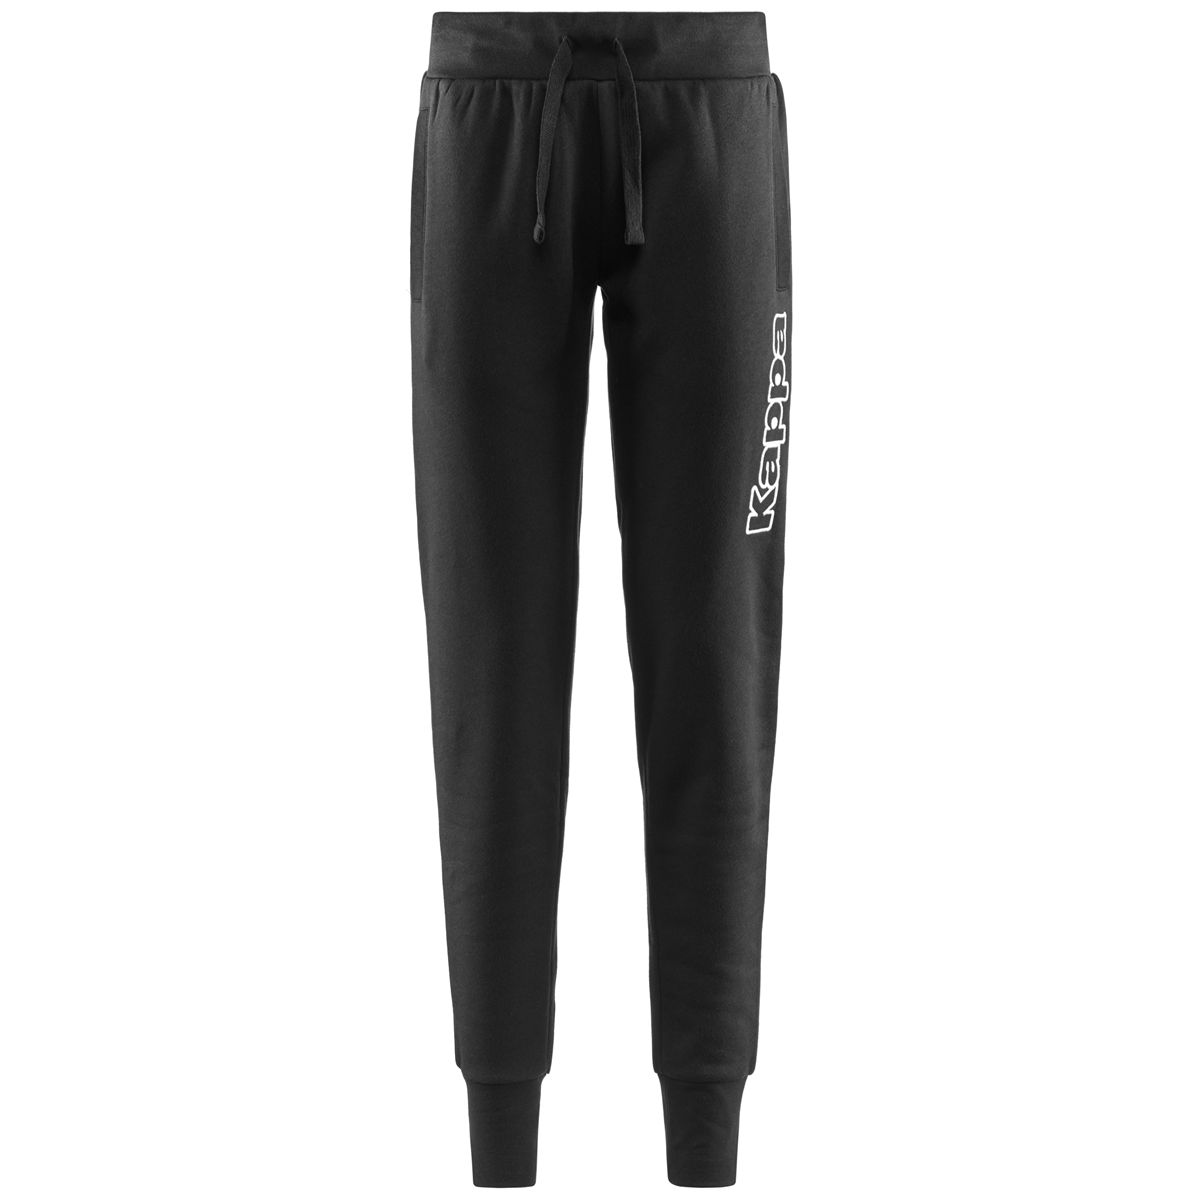 Kappa Pants KAPPA4VOLLEY WINCAN Girl Sport Trousers